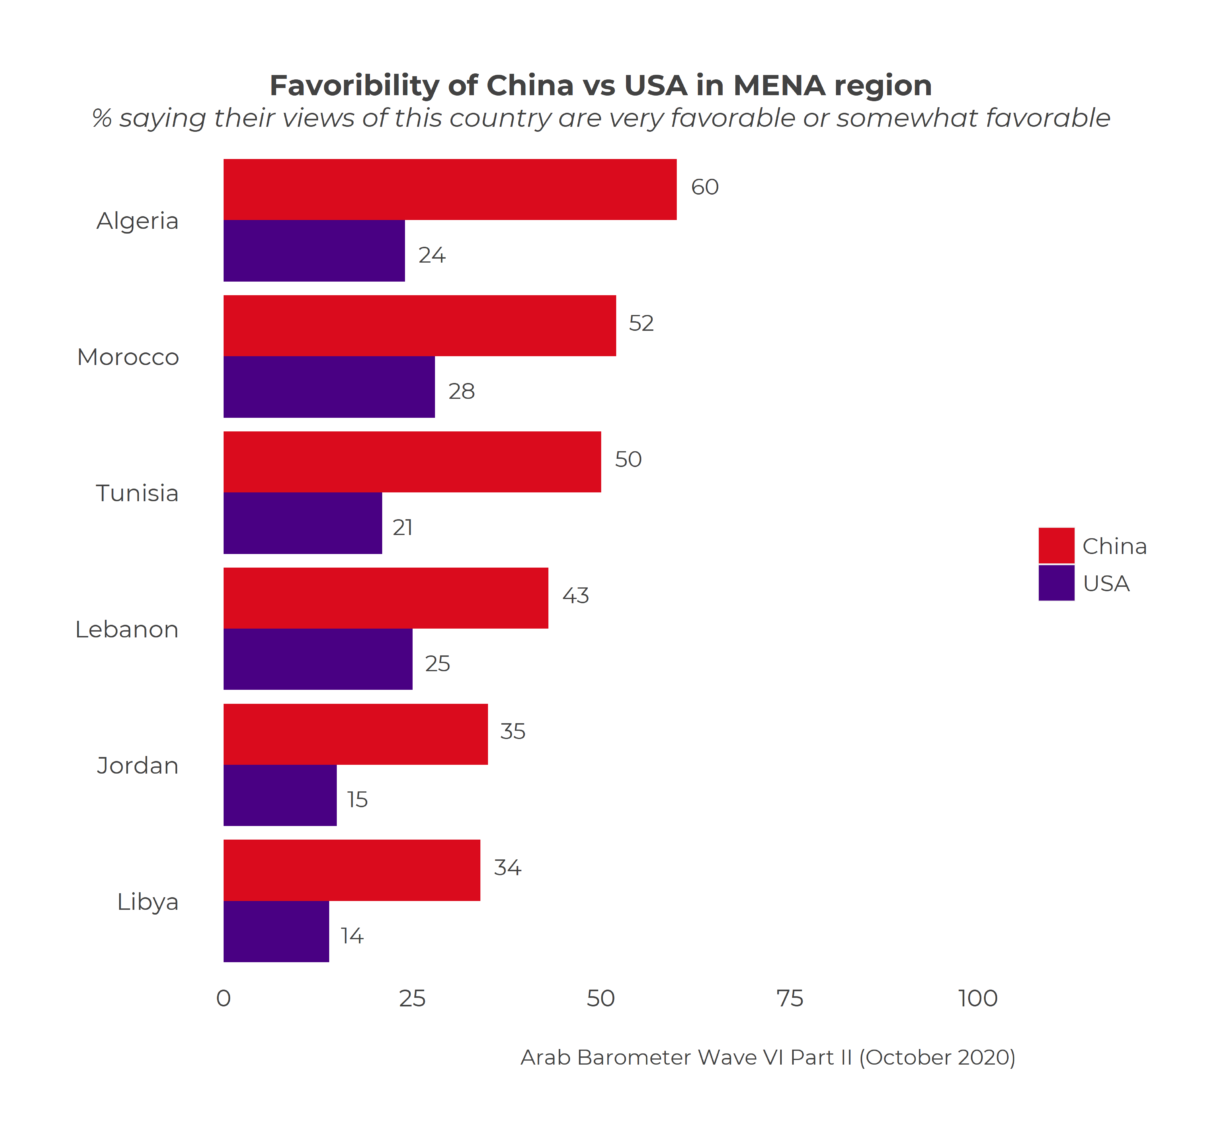 U.S. & China's competition extends to MENA